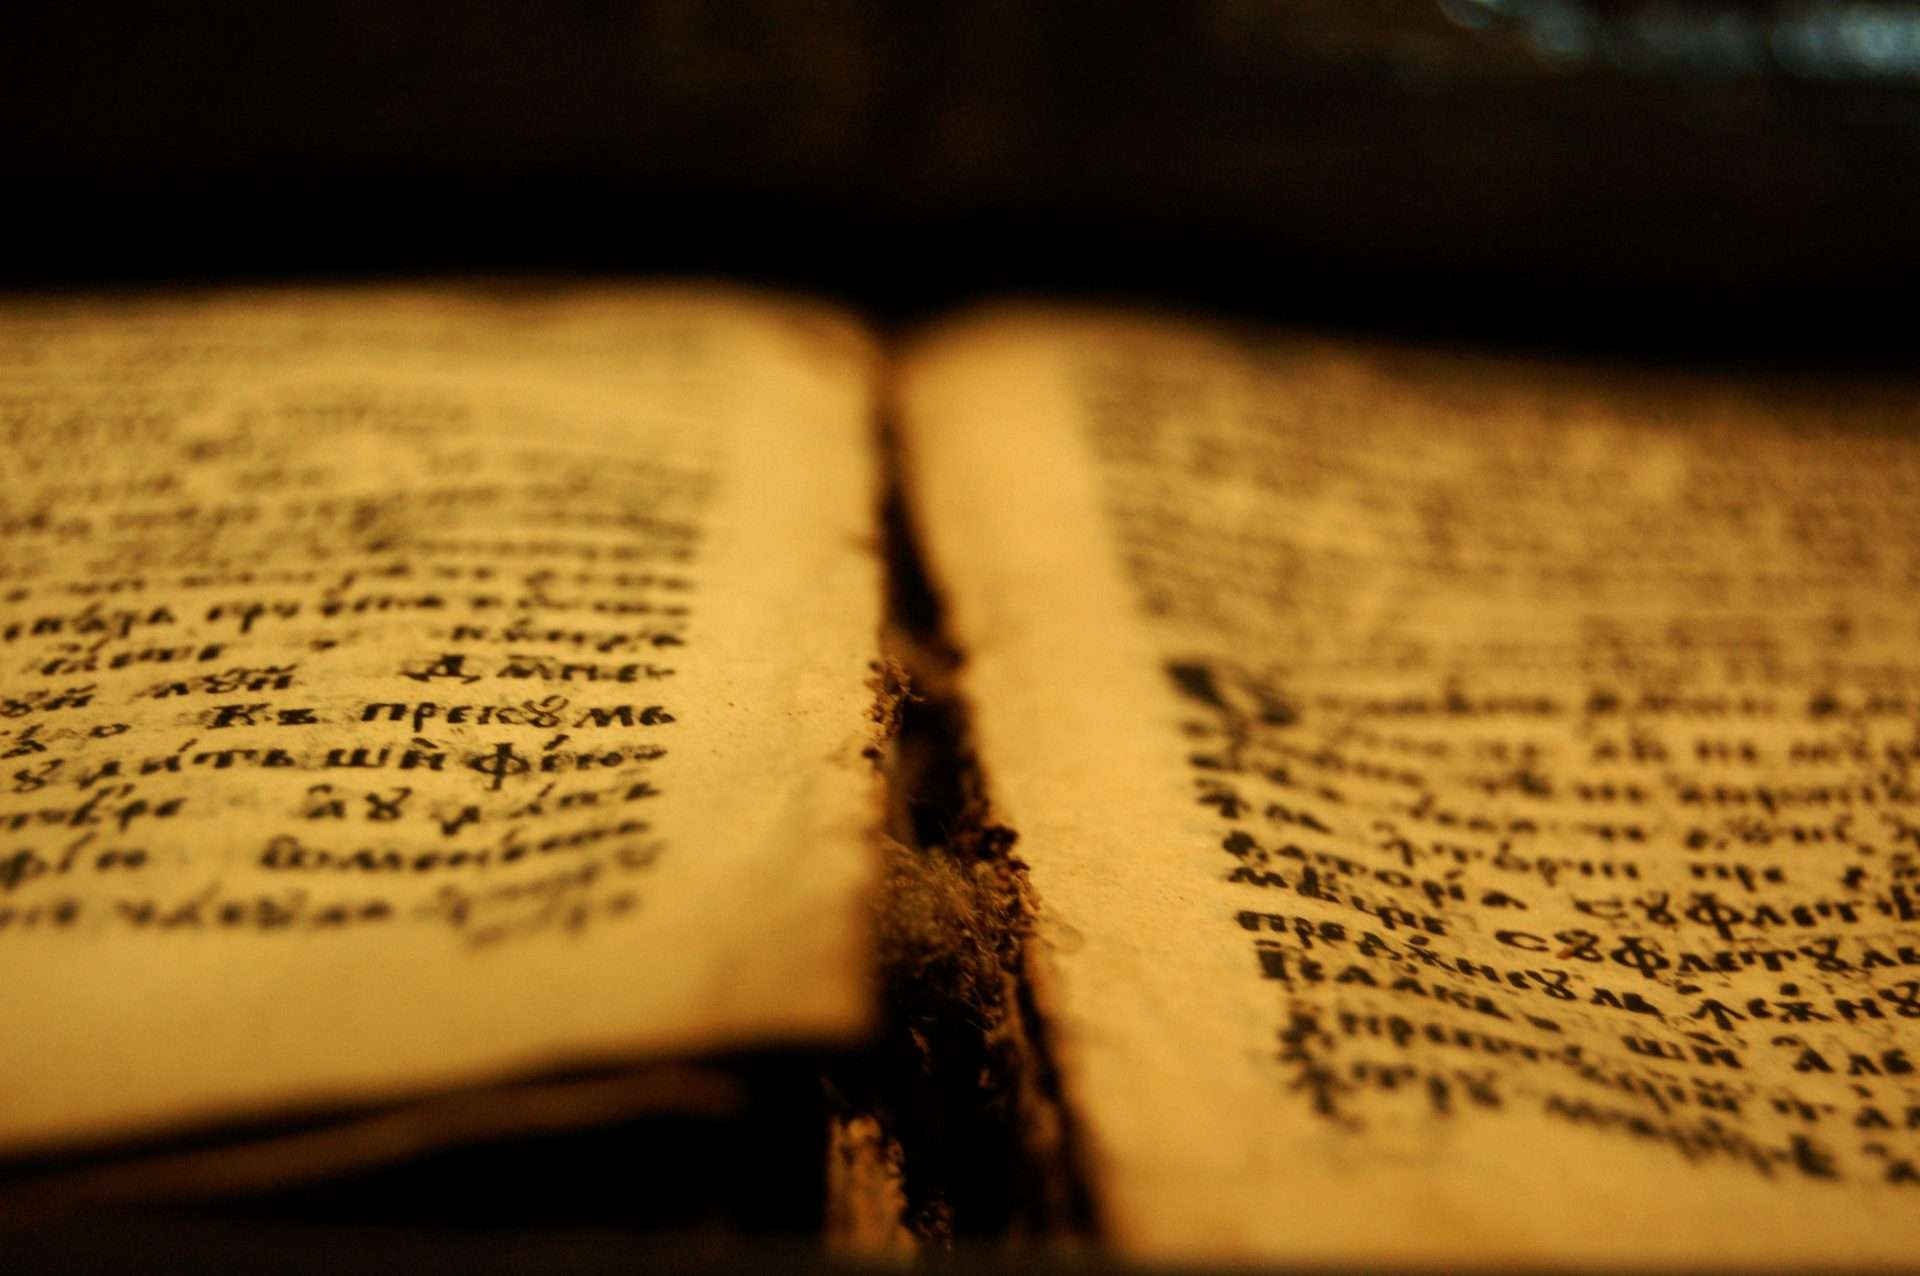 Why doesn't the Catholic Church emphasize reading the Bible?